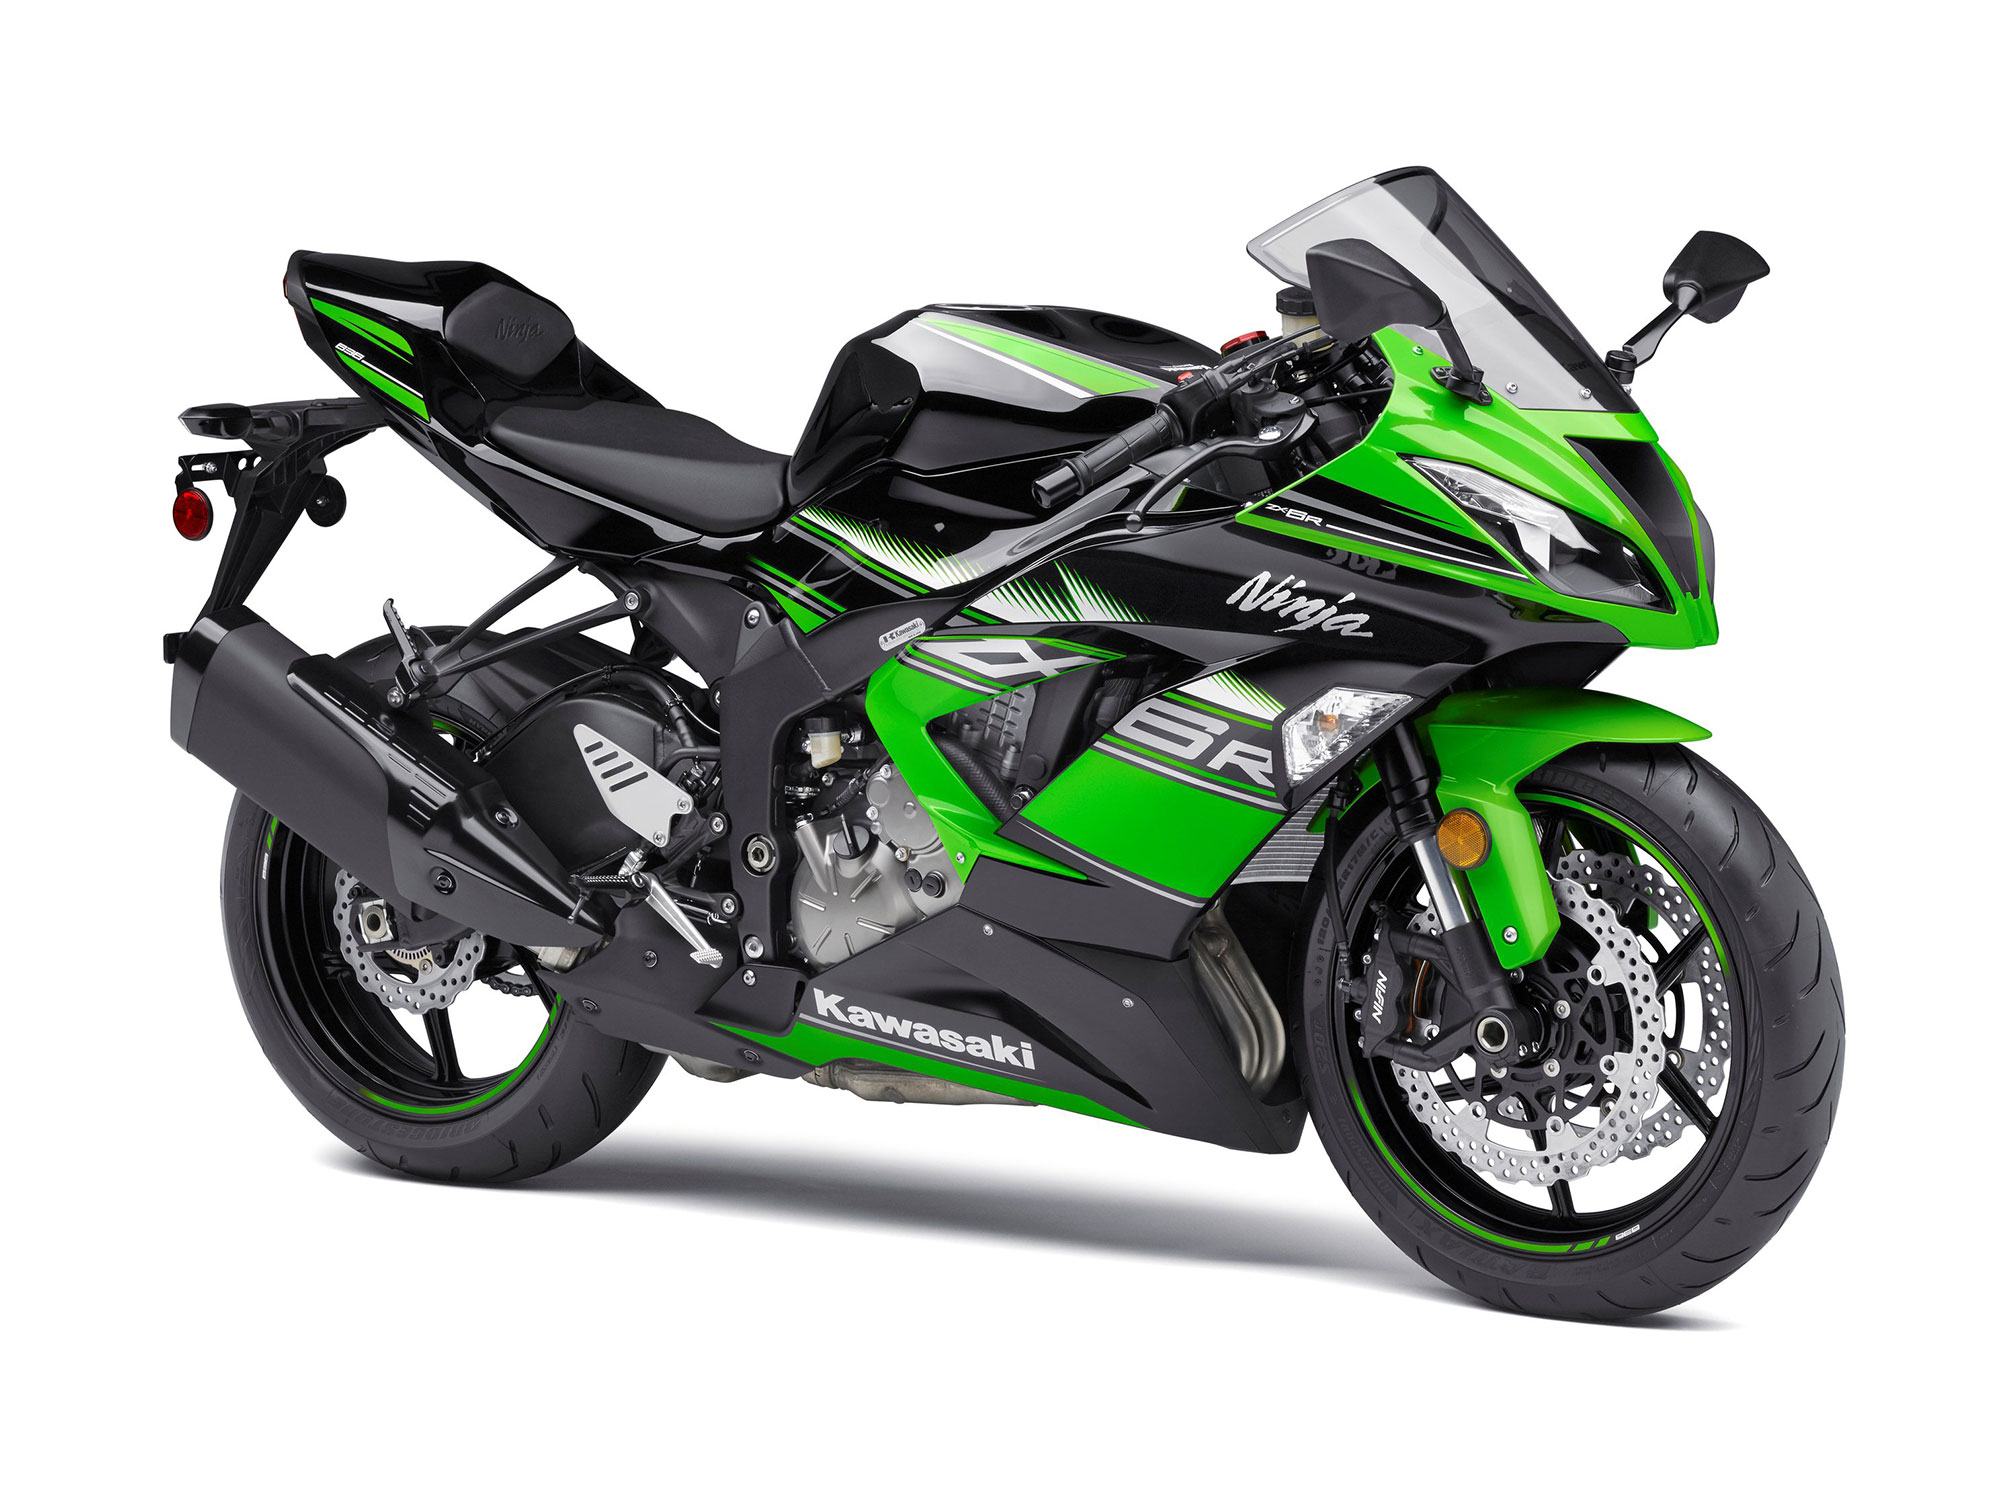 2016 kawasaki ninja zx 6r krt edition review. Black Bedroom Furniture Sets. Home Design Ideas